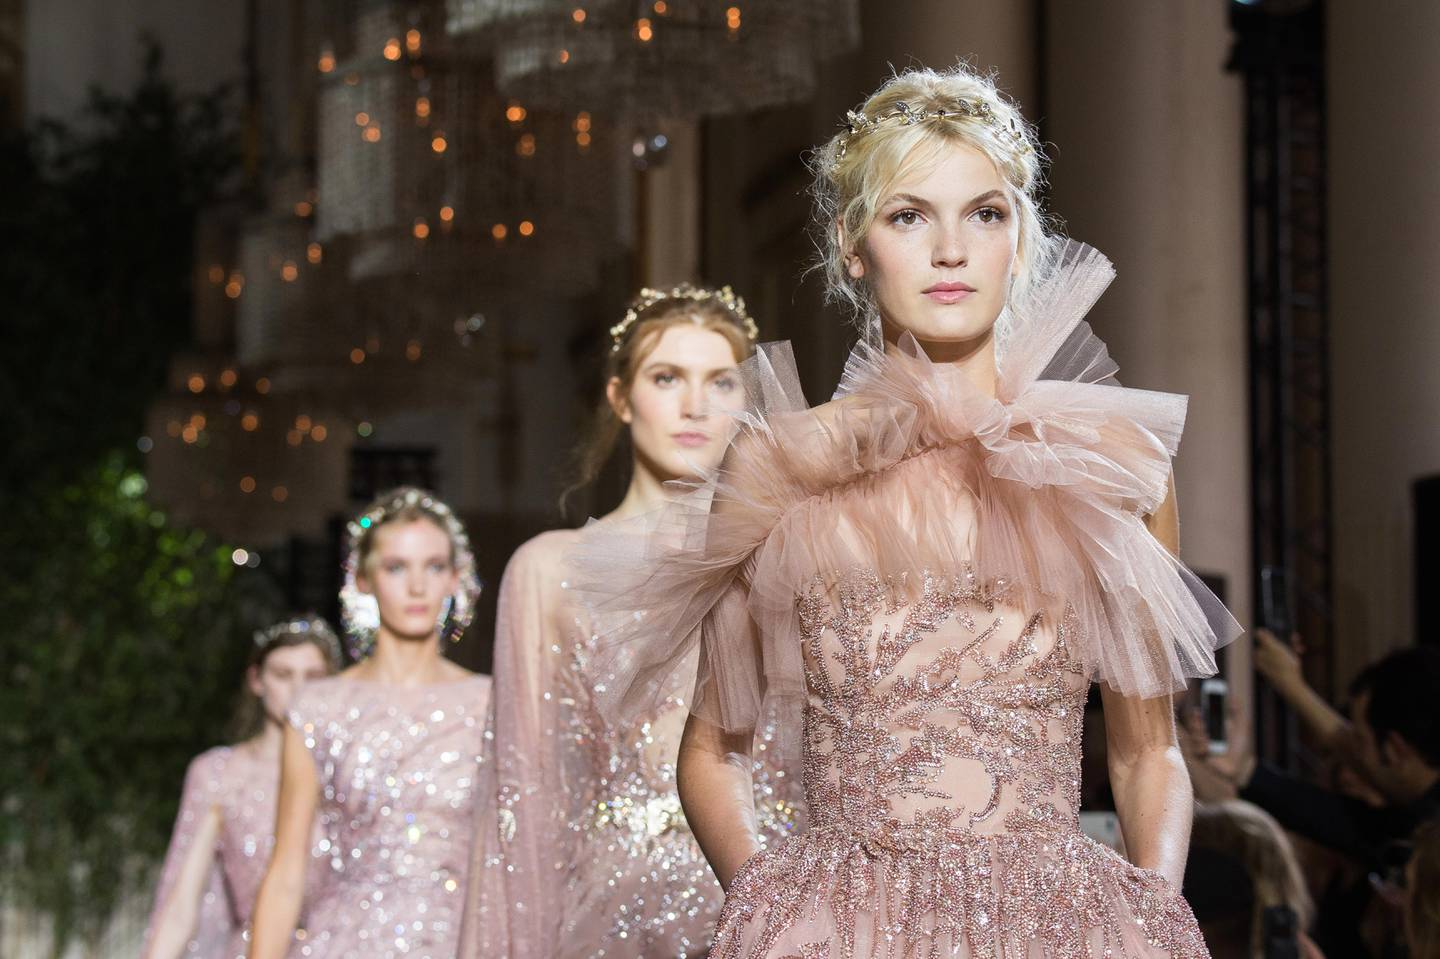 RESIZED. PARIS, FRANCE - JULY 05:  Models walk the runway during the Zuhair Murad  Haute Couture Fall/Winter 2017-2018 show as part of Haute Couture Paris Fashion Week on July 5, 2017 in Paris, France.  (Photo by Francois Durand/Getty Images)